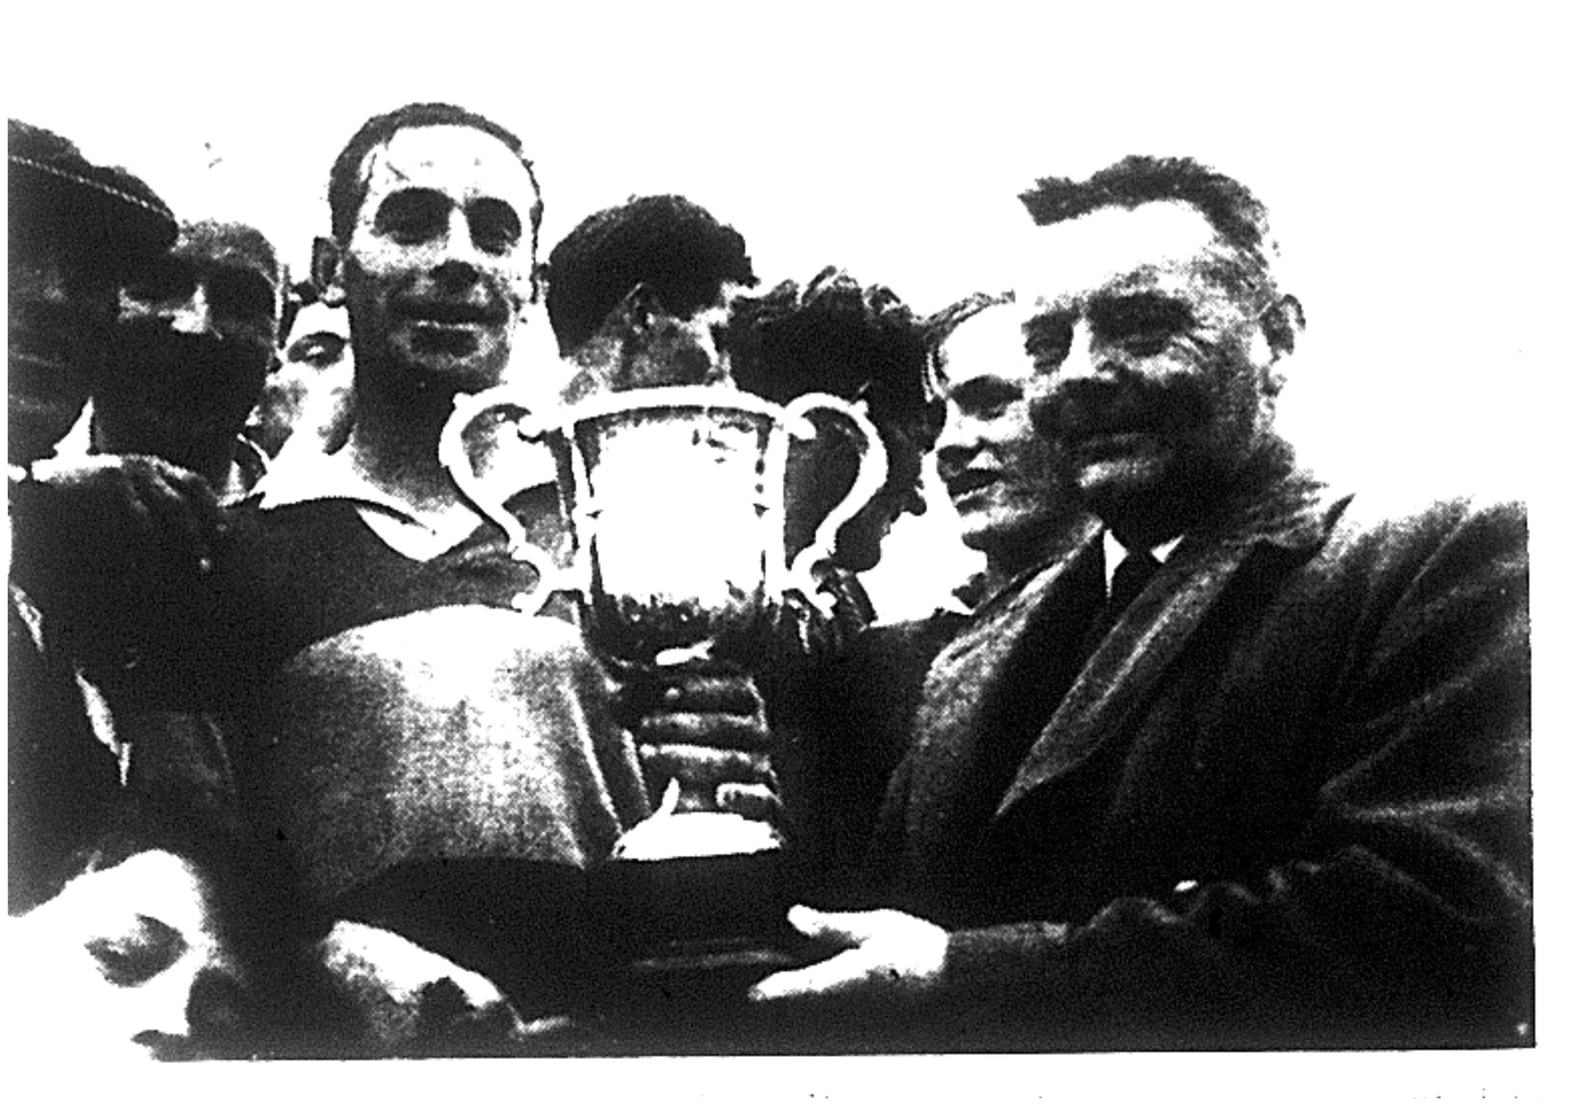 1964 Wexford District Champions, Dan Gallagher accepting the trophy